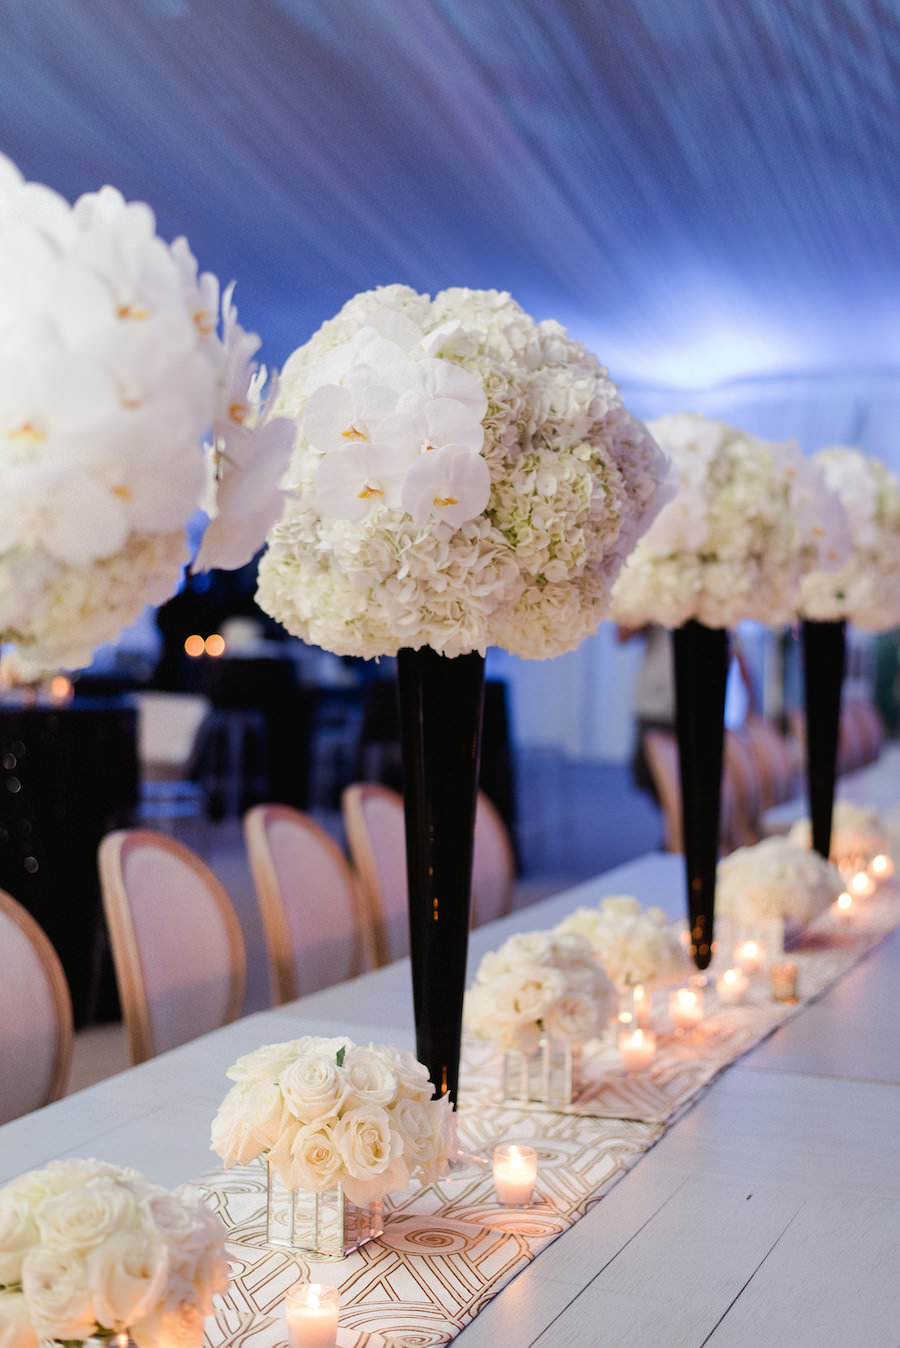 Wedding Reception Décor with Tall, White Hydrangea and Orchid Centerpieces with Black Vases on Long, White Feasting Tables | Wedding Flowers by Andrea Layne Floral Design | Downtown Tampa Wedding Photographer Ailyn La Torre Photography